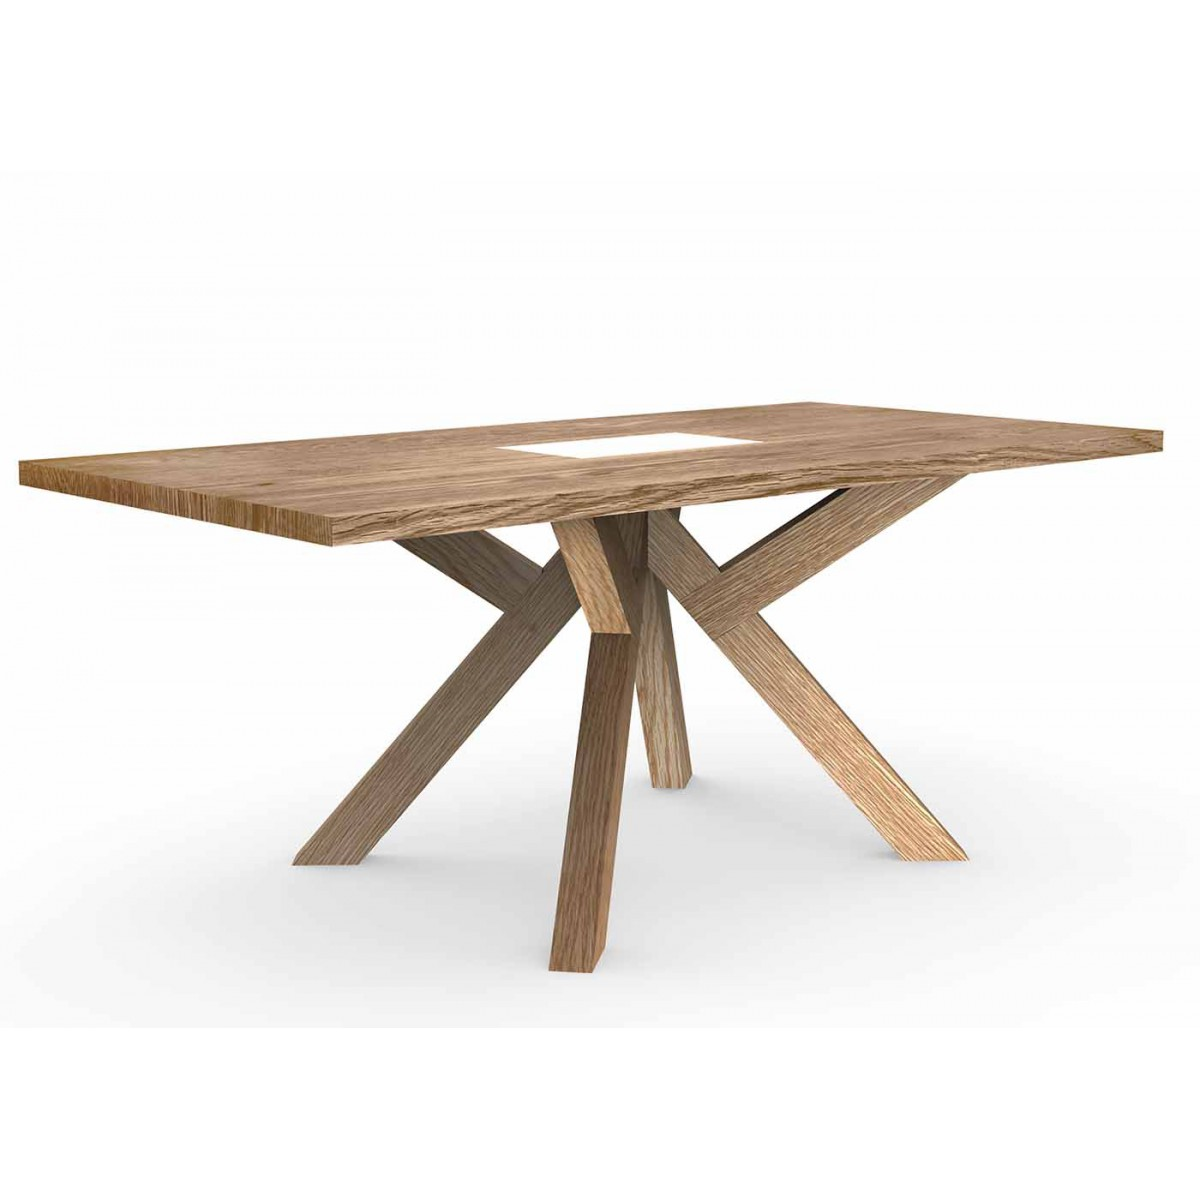 Table de repas en bois design scandinave sign e js filiber - Table moderne en bois ...